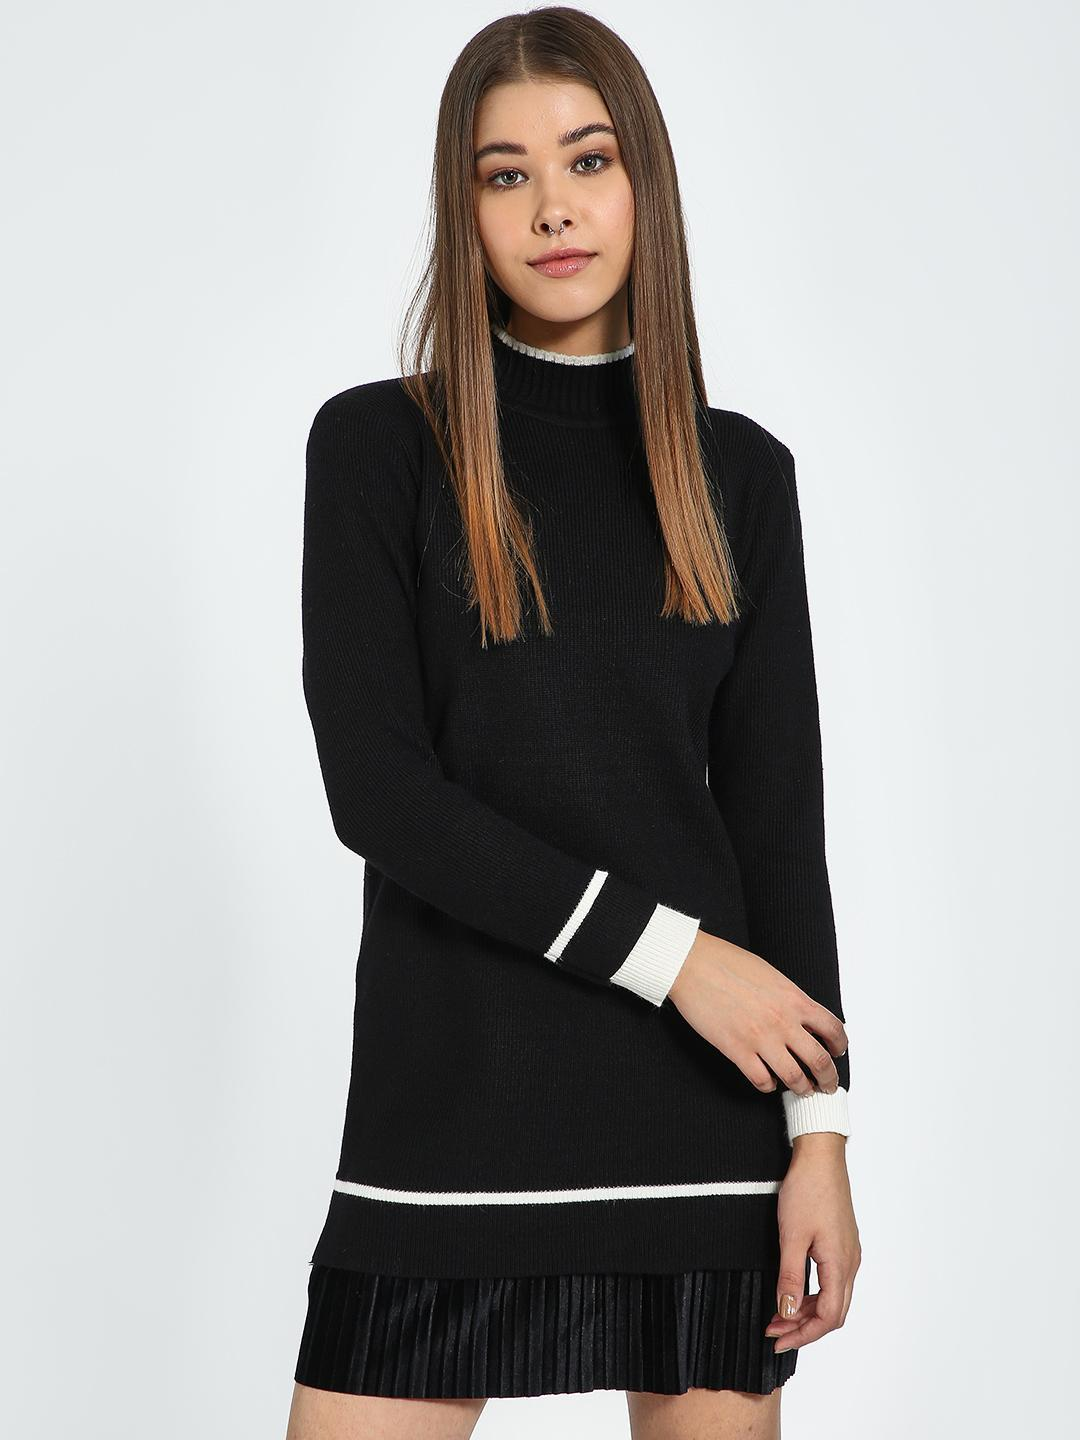 Blue Saint Black Turtle Neck Contrast Stripe Longline Pullover 1